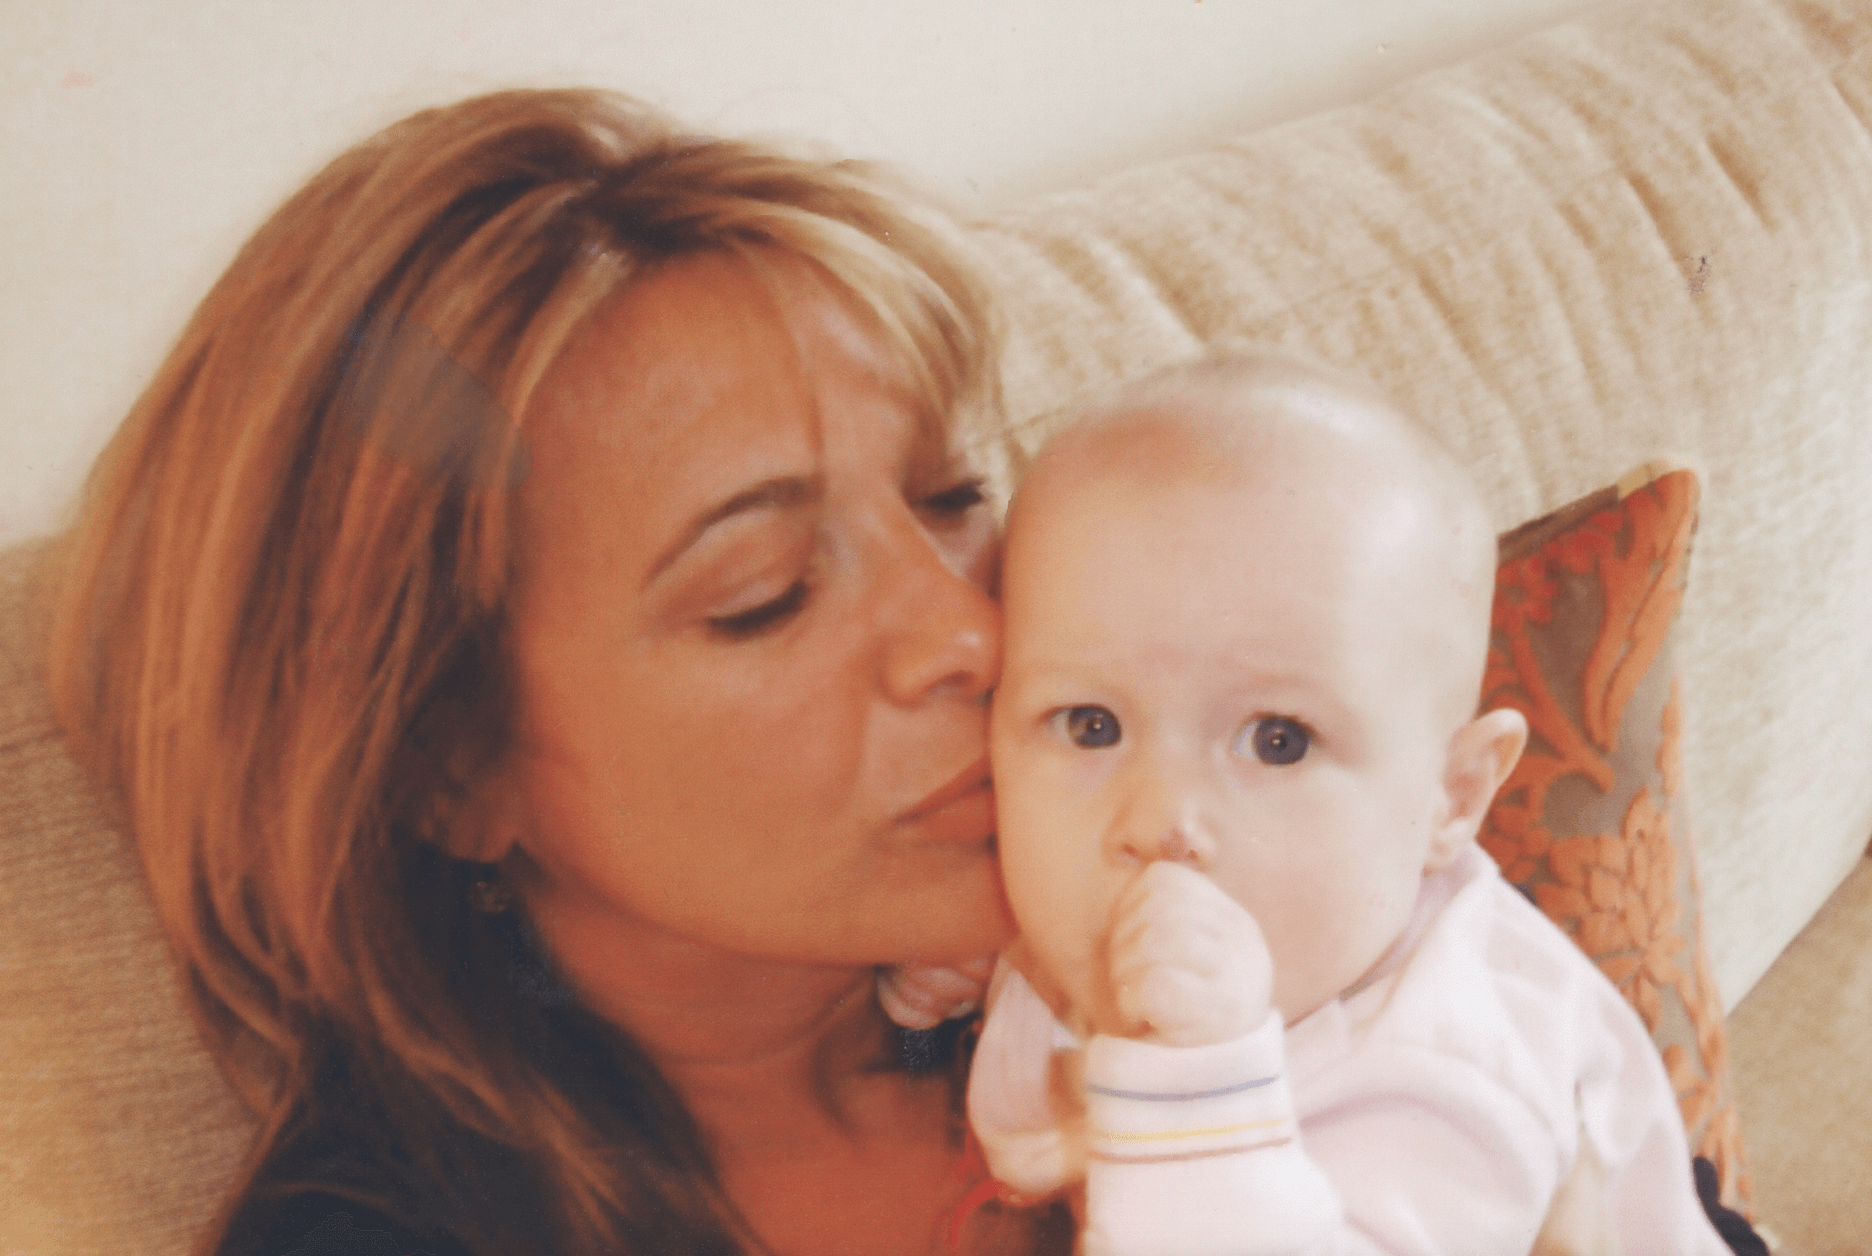 Claire with a child